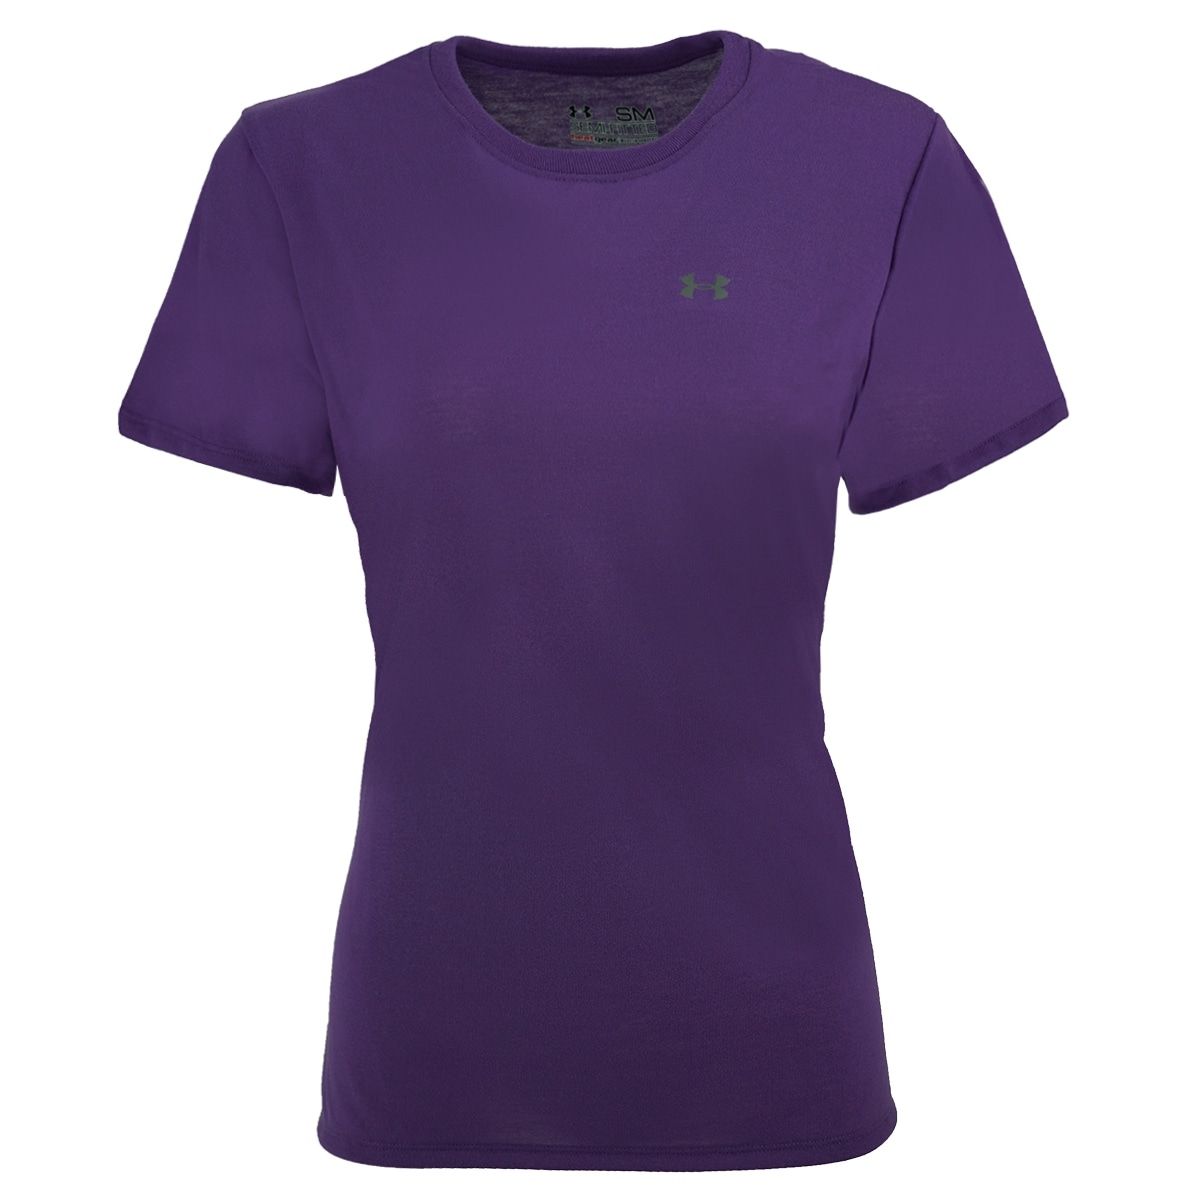 under armour t shirts women's